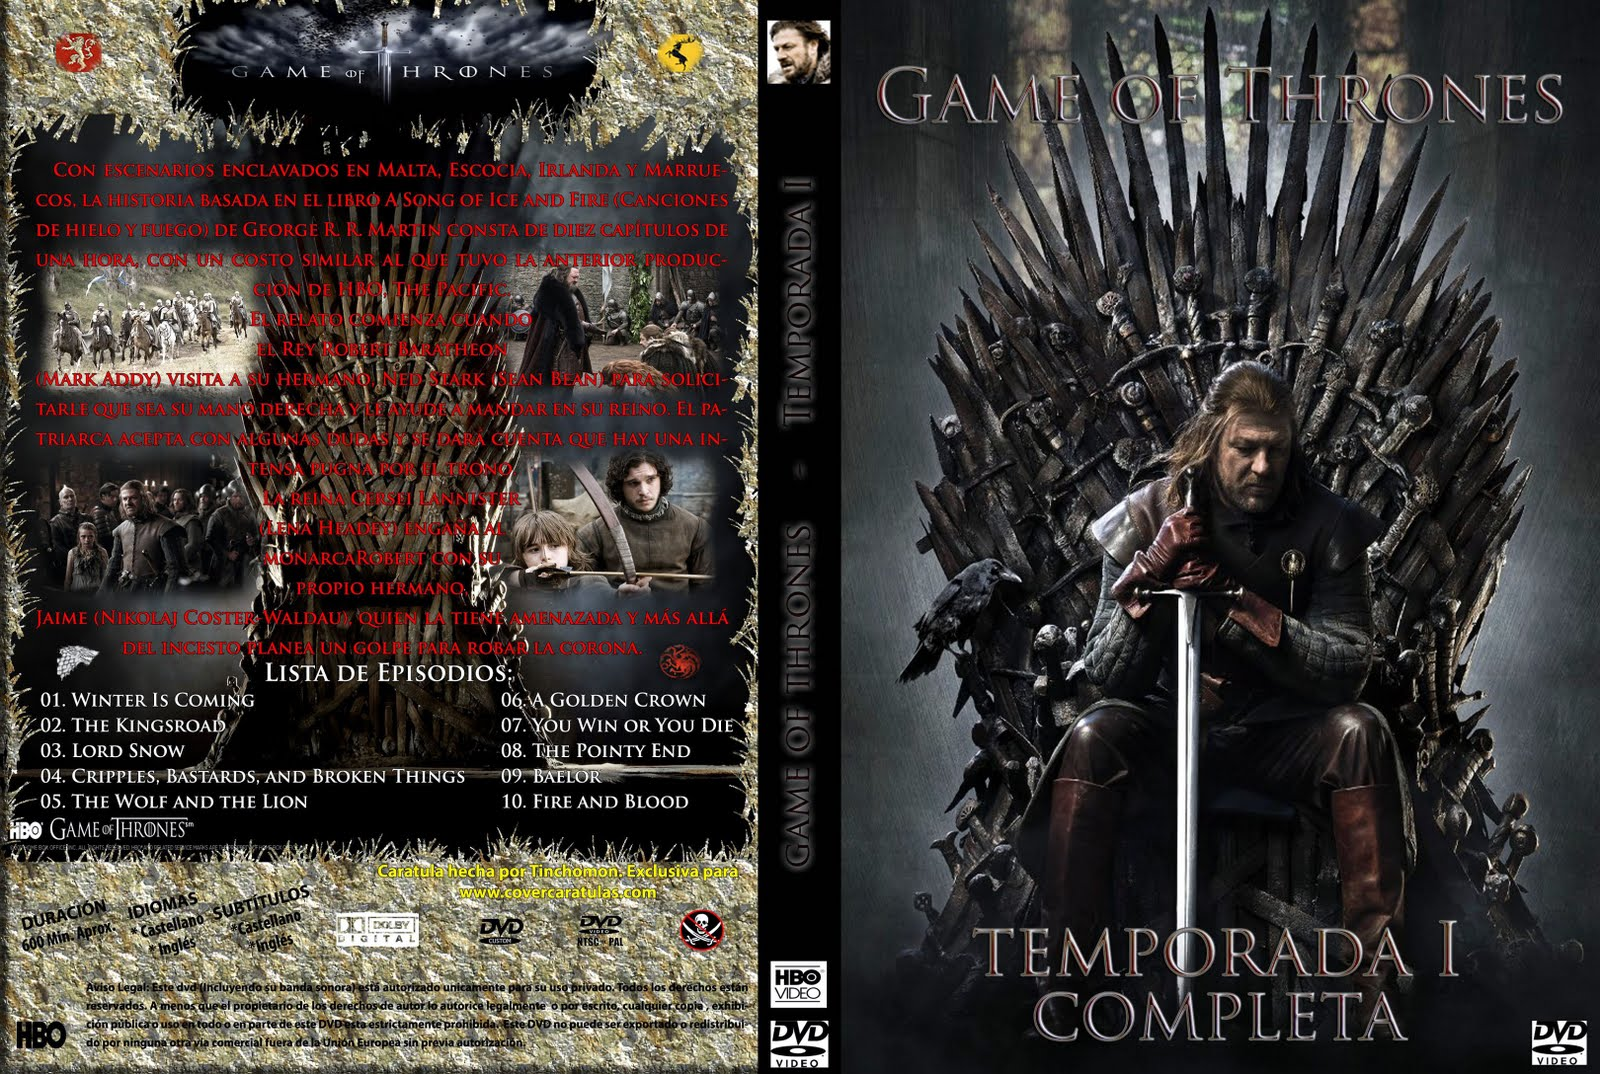 game of thrones season 1 dvd cover. Black Bedroom Furniture Sets. Home Design Ideas